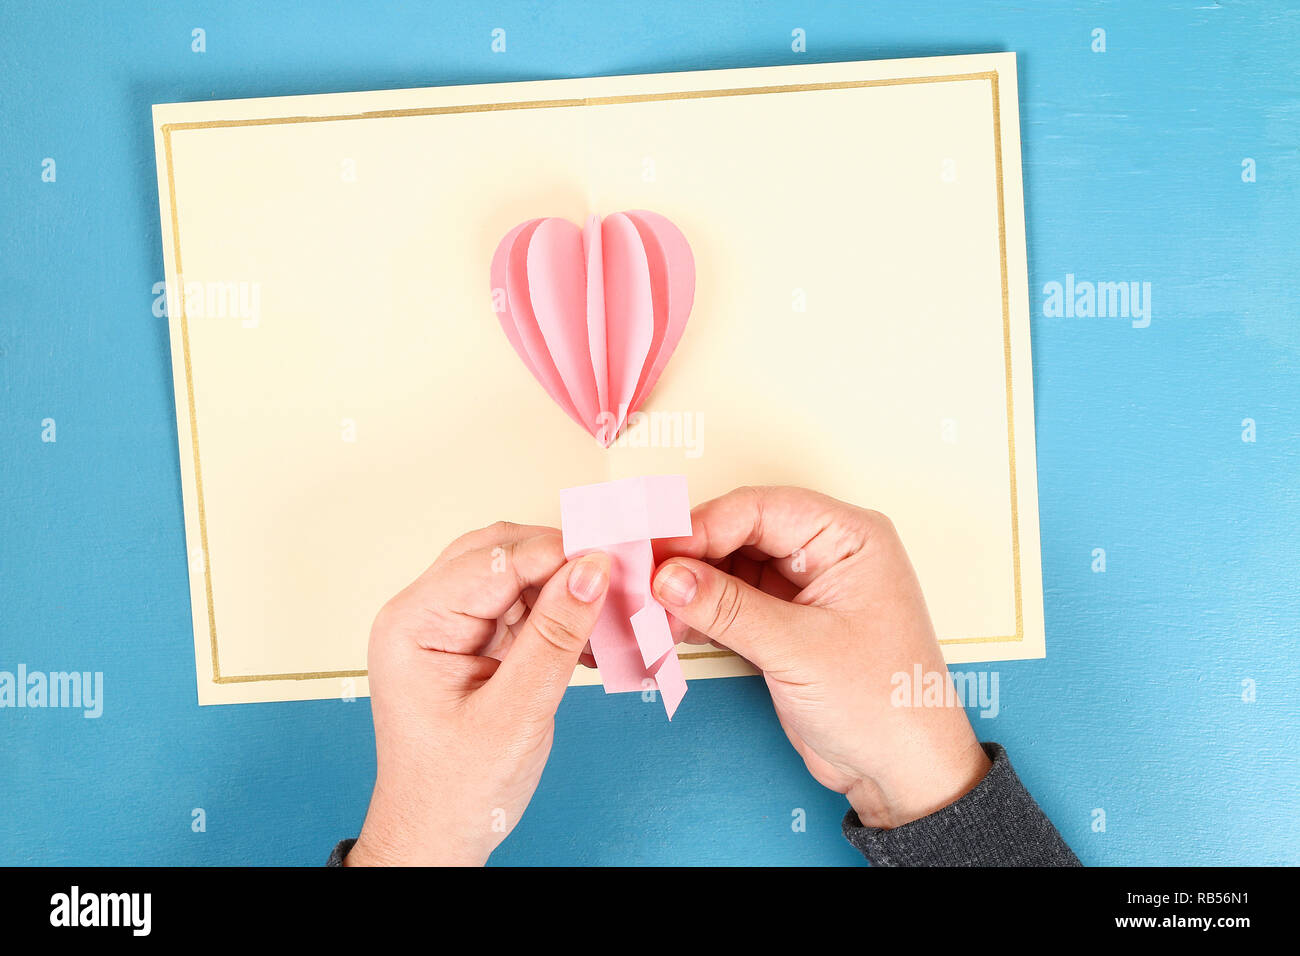 Diy Valentines Greeting Card Blue Wooden Background Gift Ideas Day Love February 14 Valentines Day Handmade Card Volumetric Heart Paper Form Ball Stock Photo Alamy